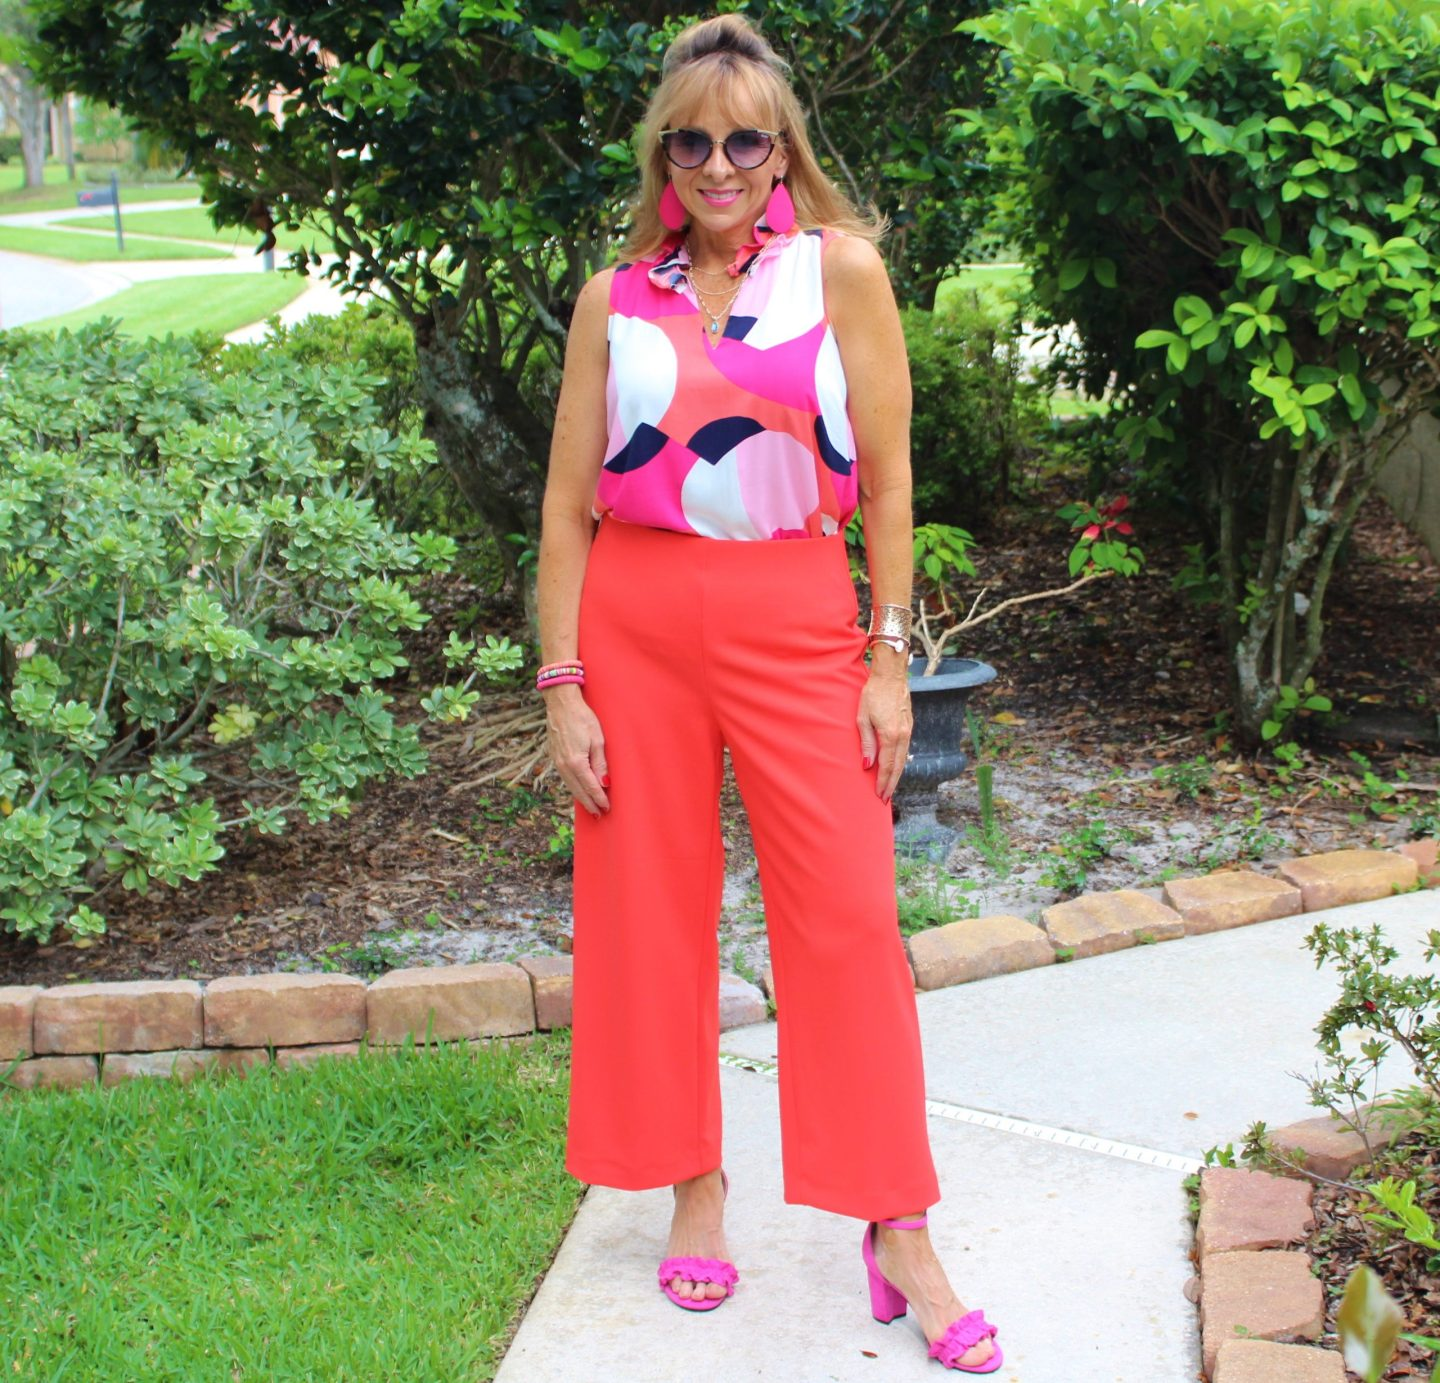 Printed Sleeveless Top + Orange Pants + Hot Pink Heels